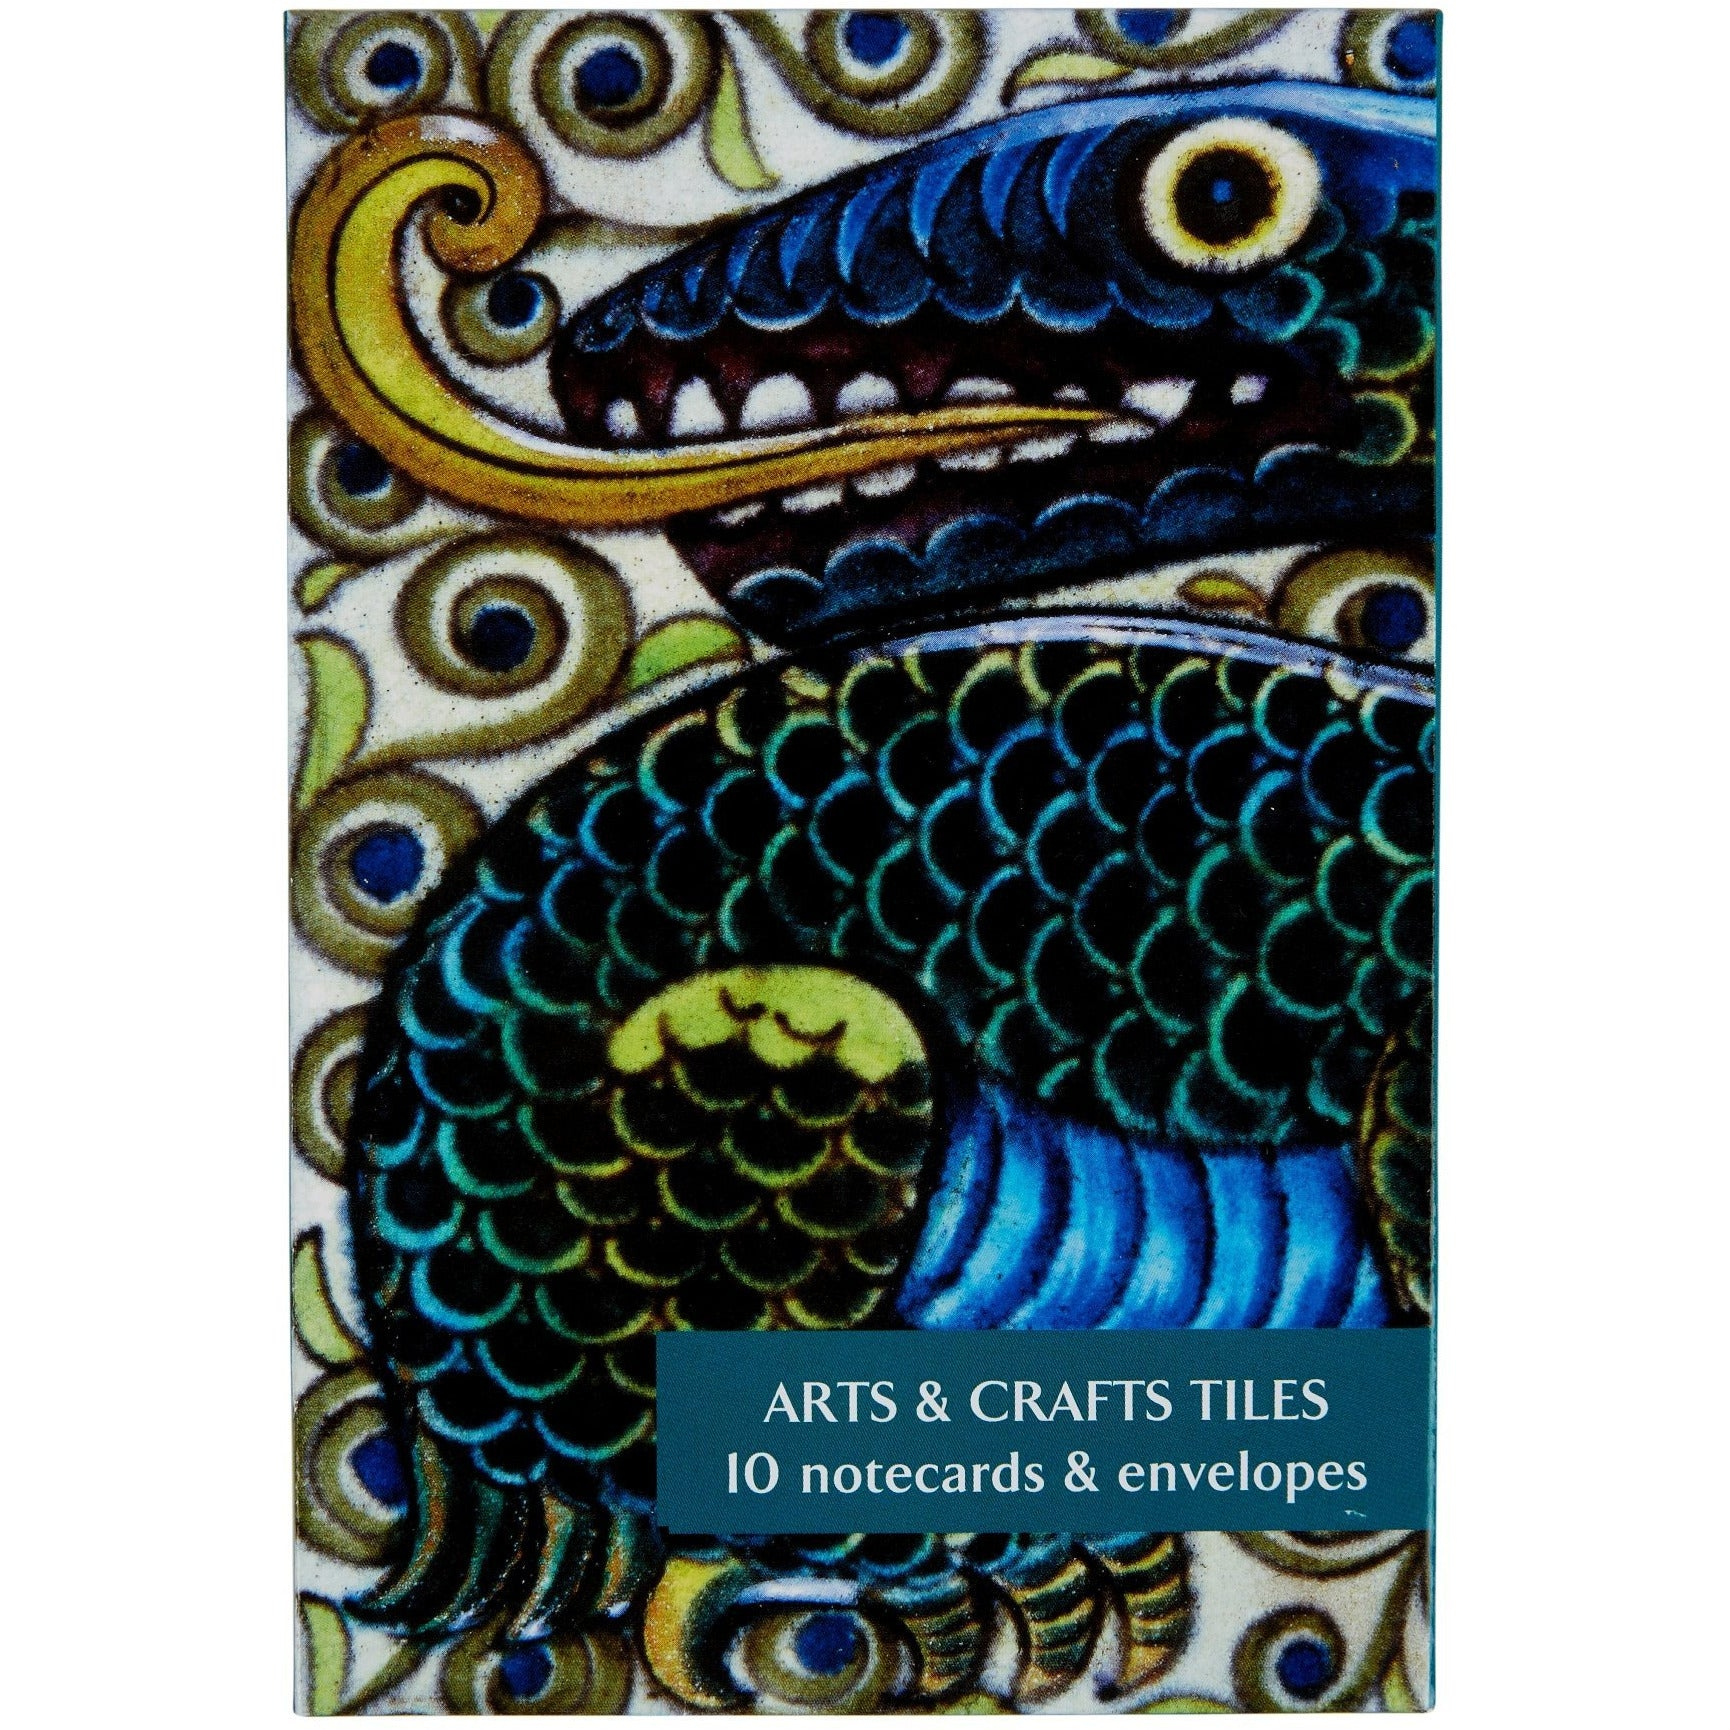 Featured image for the project: Arts & Crafts Tiles - Notecard pack